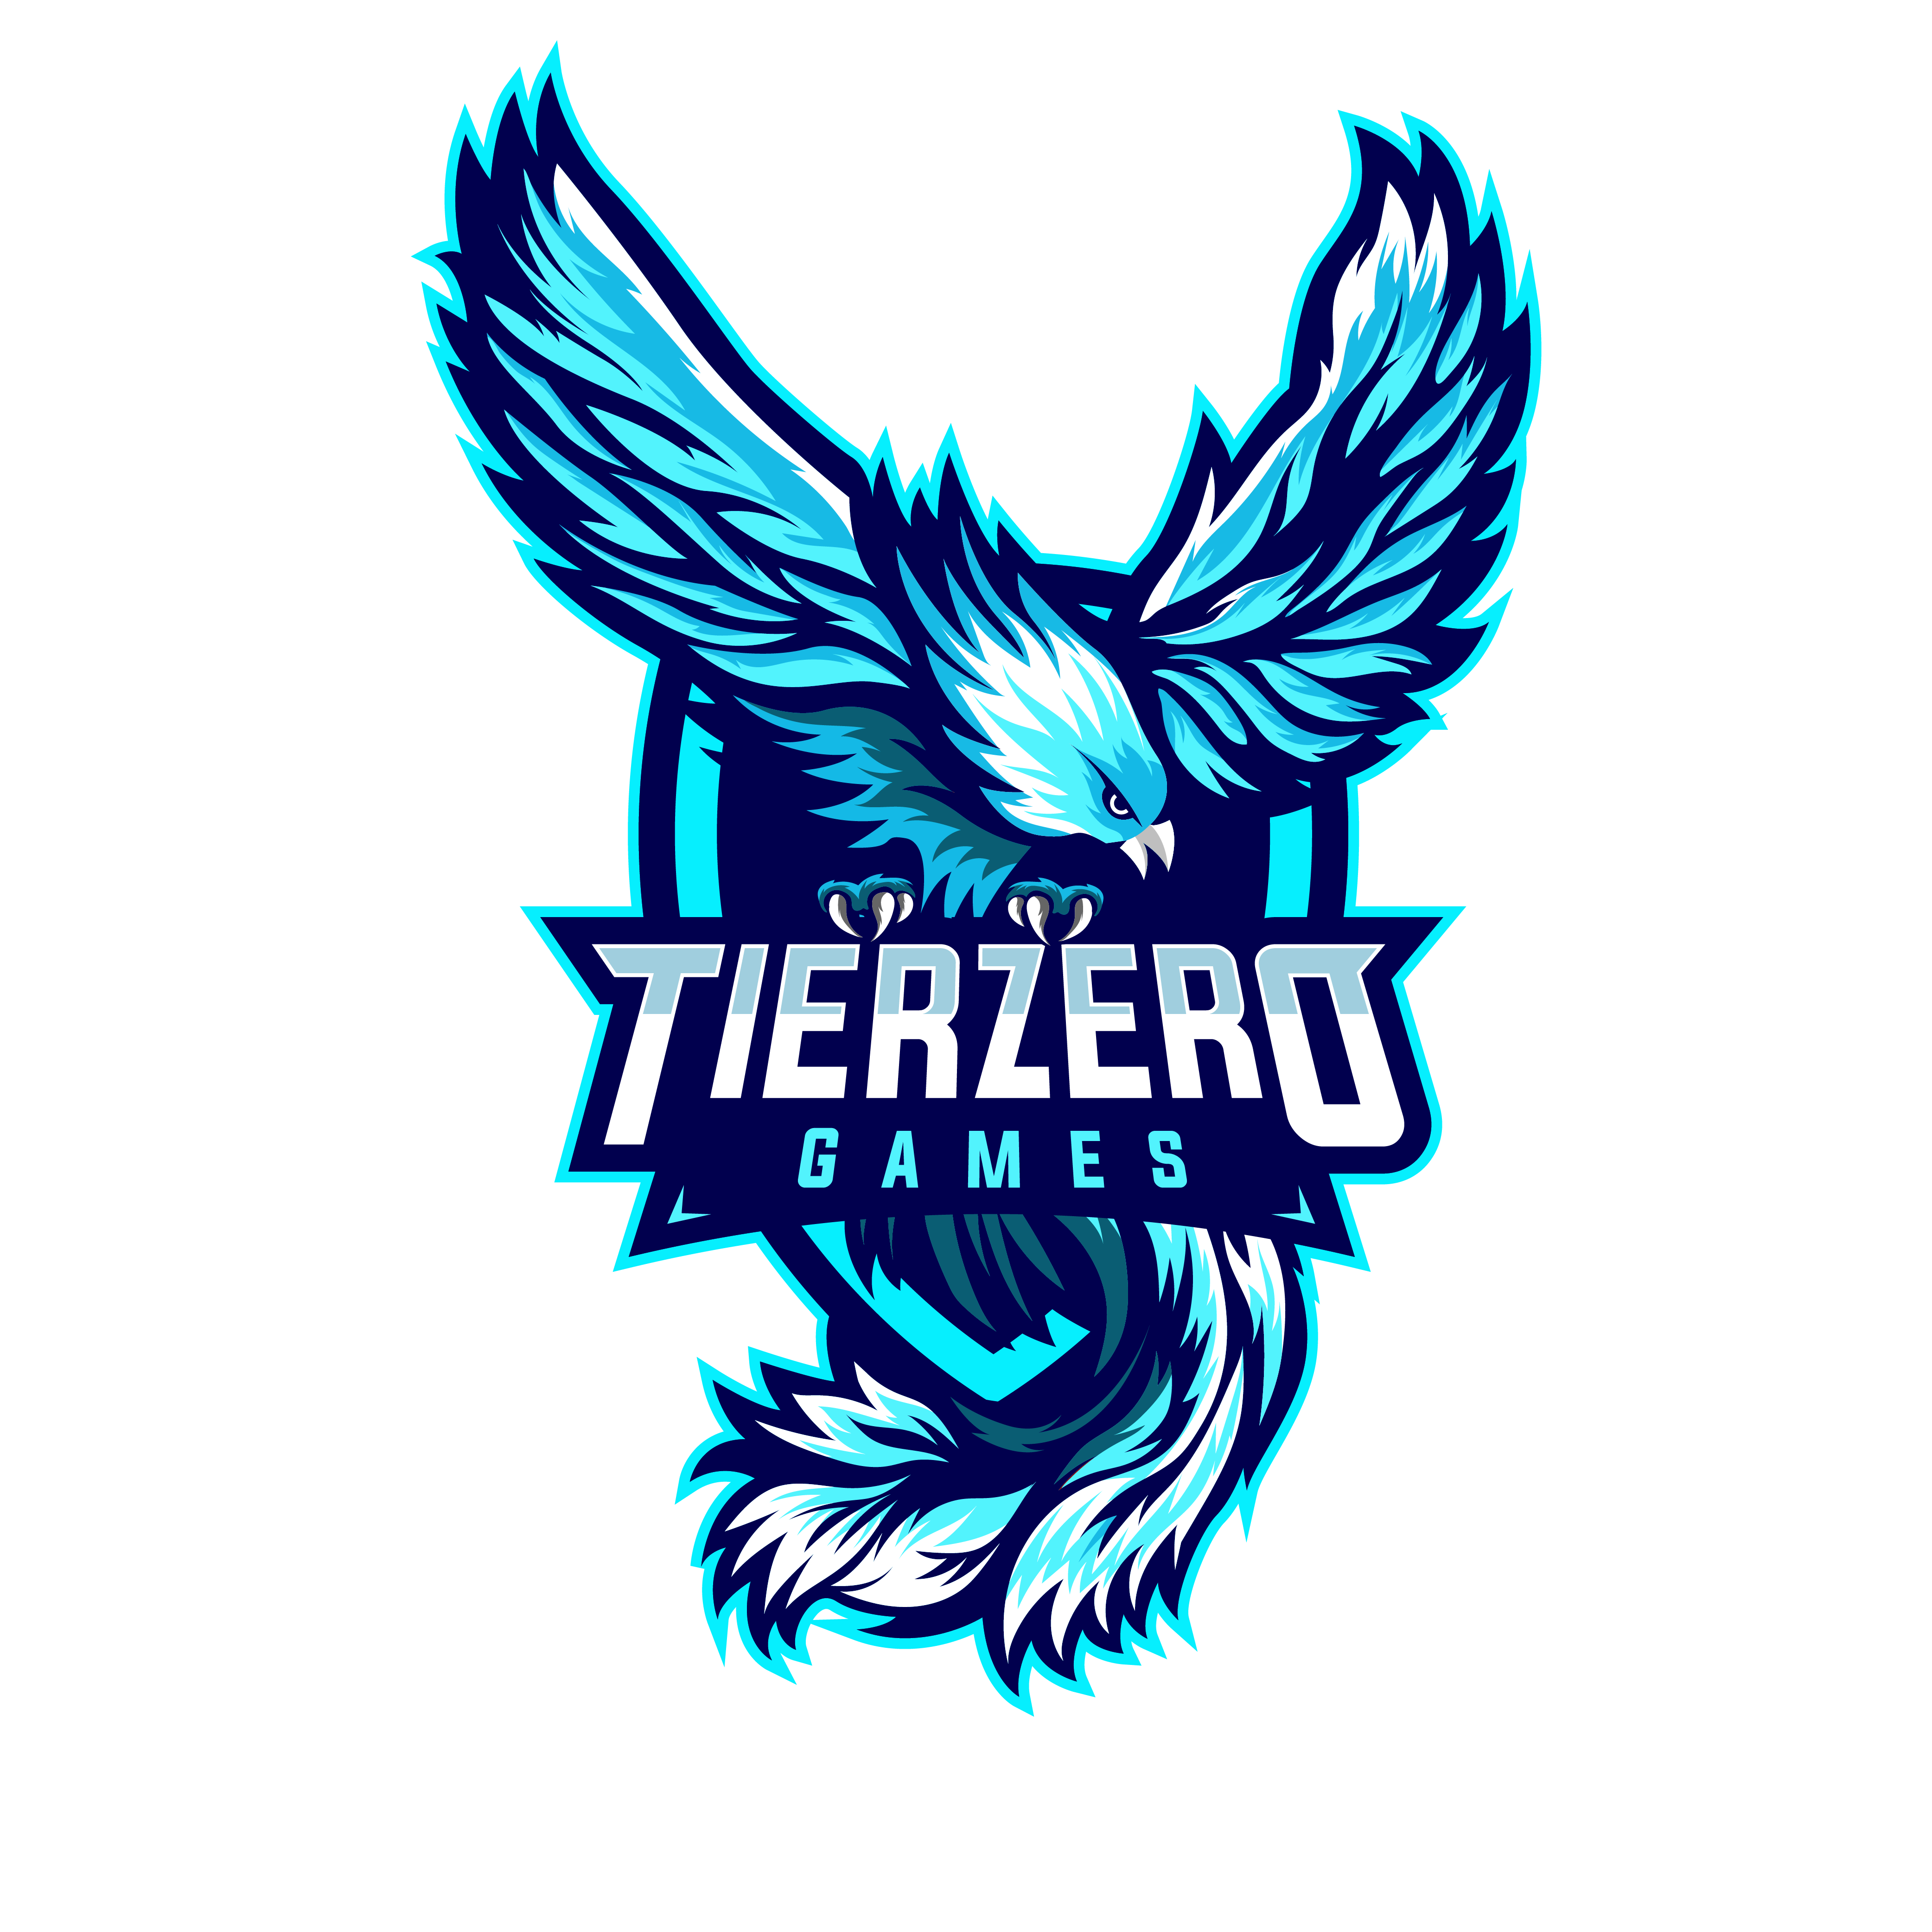 Tier Zero Games - The latest Trading Cards and Board Games